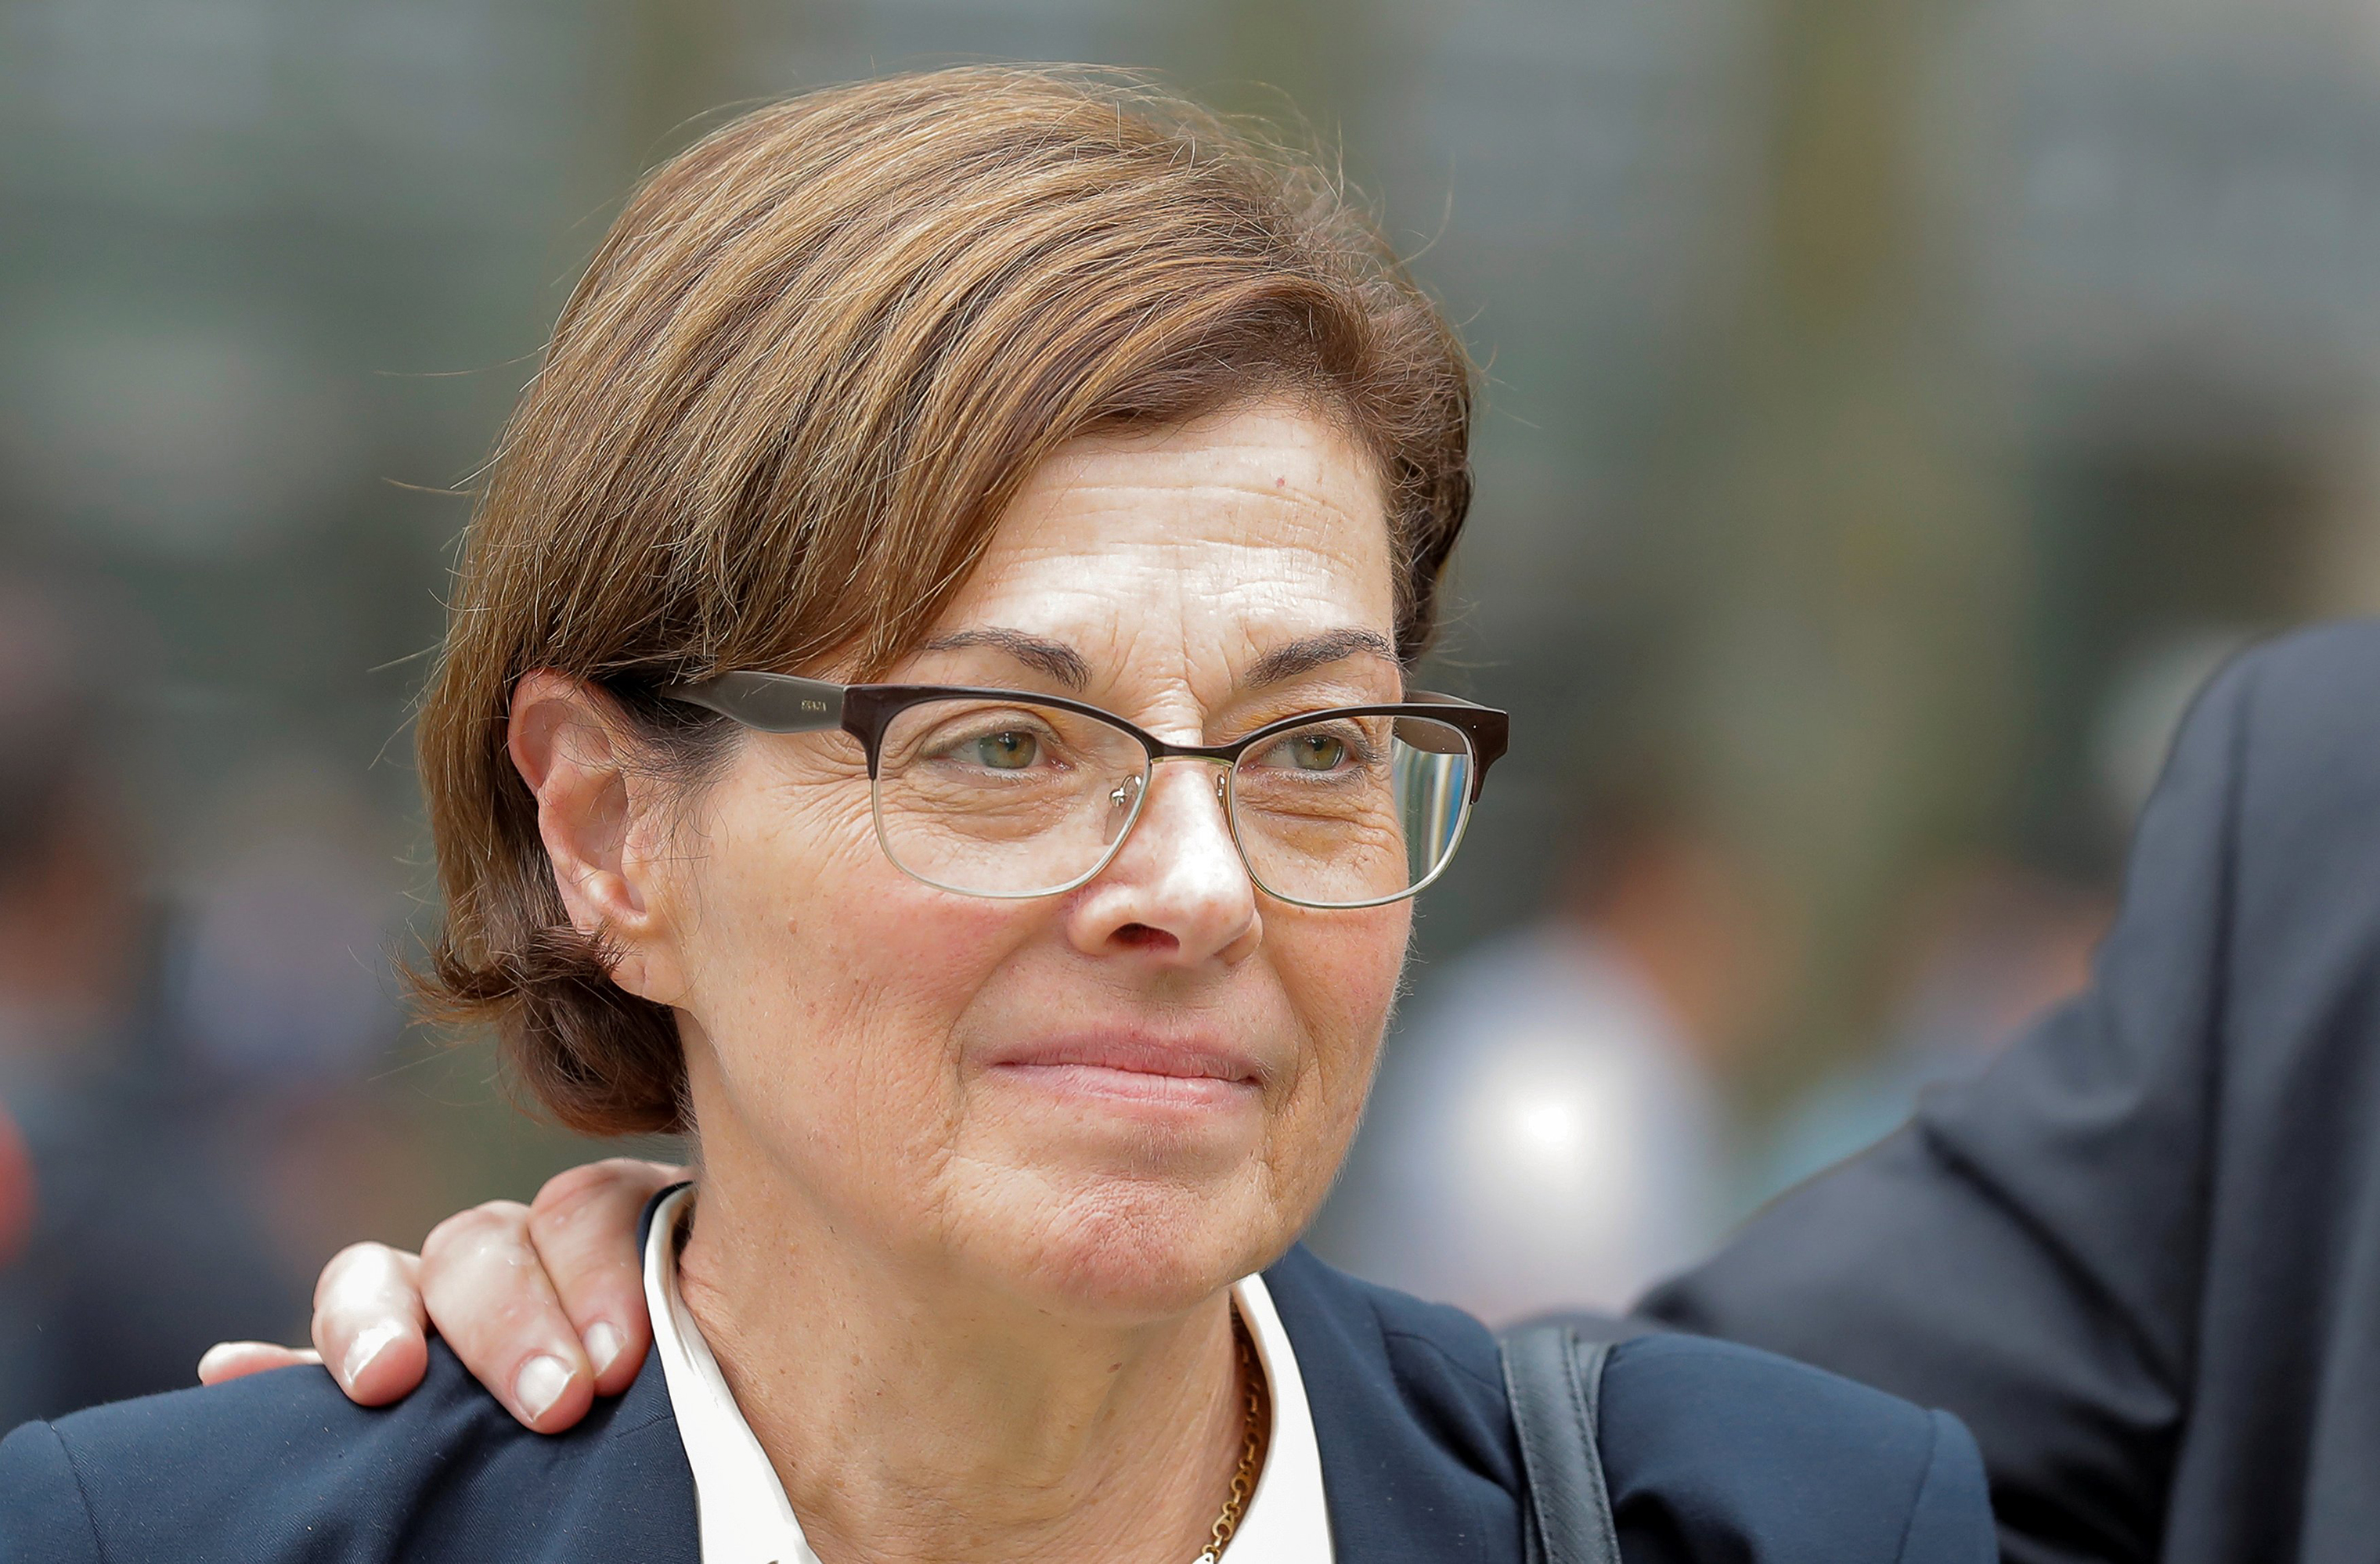 Nancy Salzman exits following a hearing on charges in relation to the Albany-based organization NXIVM at the United States Federal Courthouse in Brooklyn at New York, U.S., on July 25, 2018.